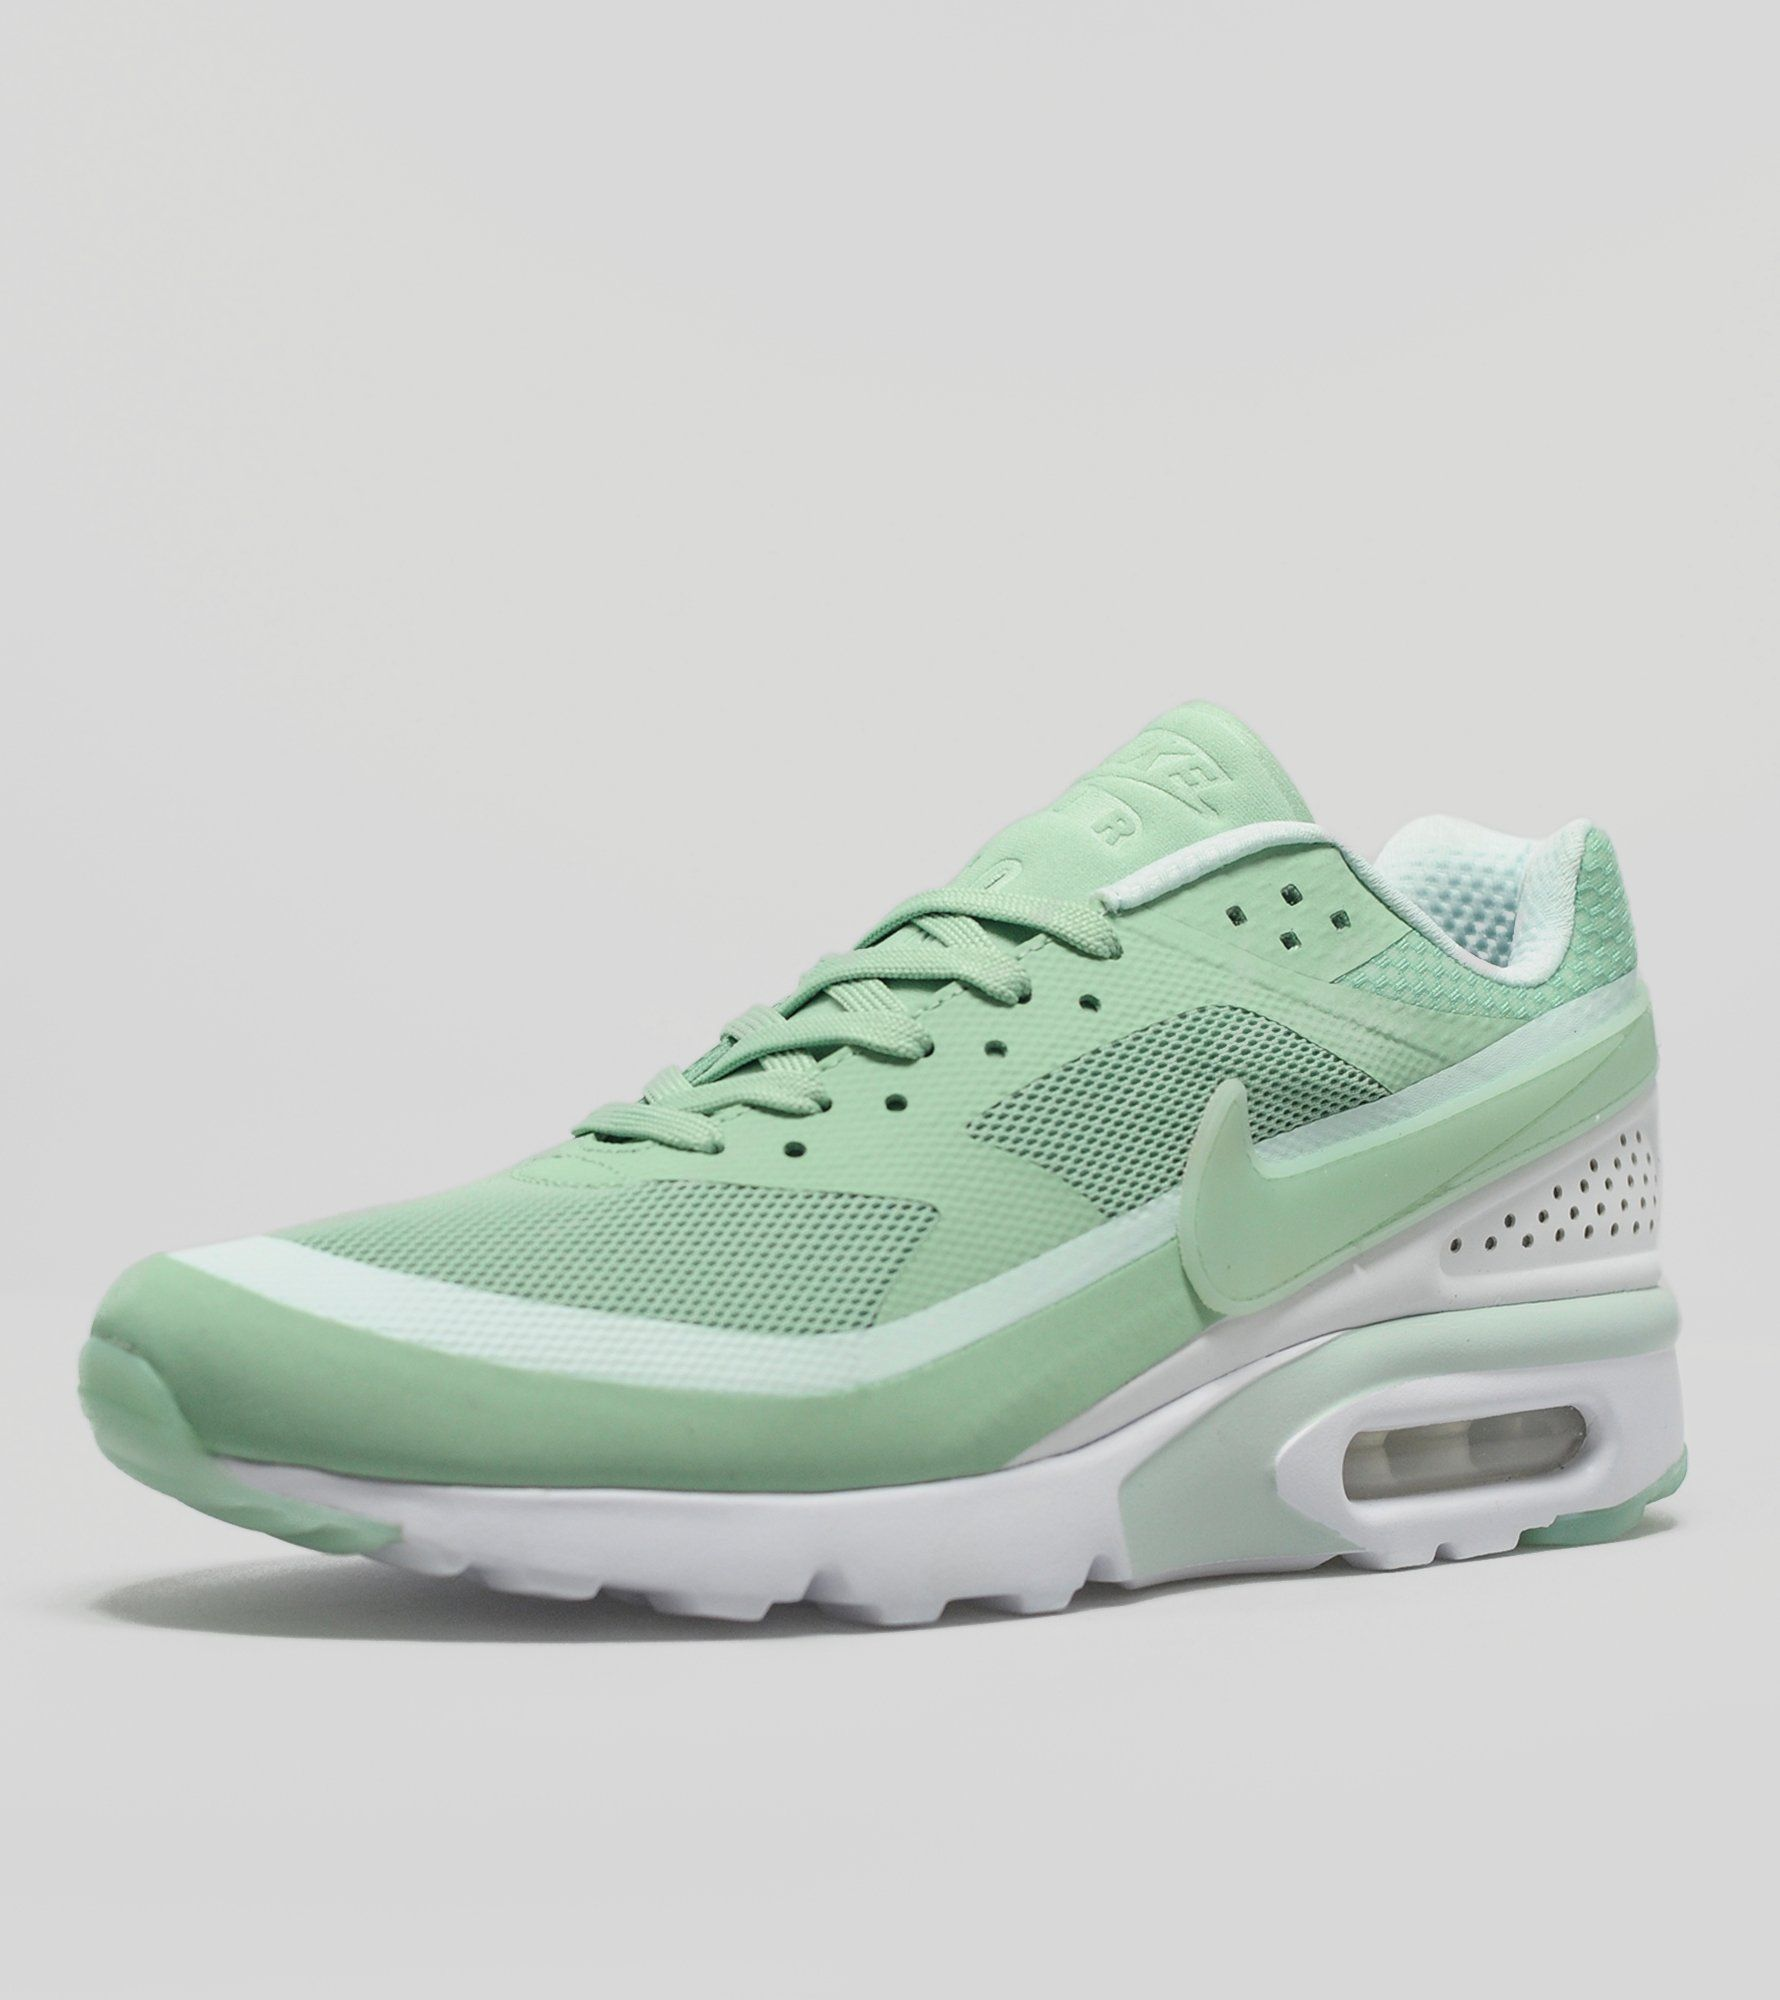 new arrival 8c28a 4bcb0 Nike Air Max BW Ultra   Size